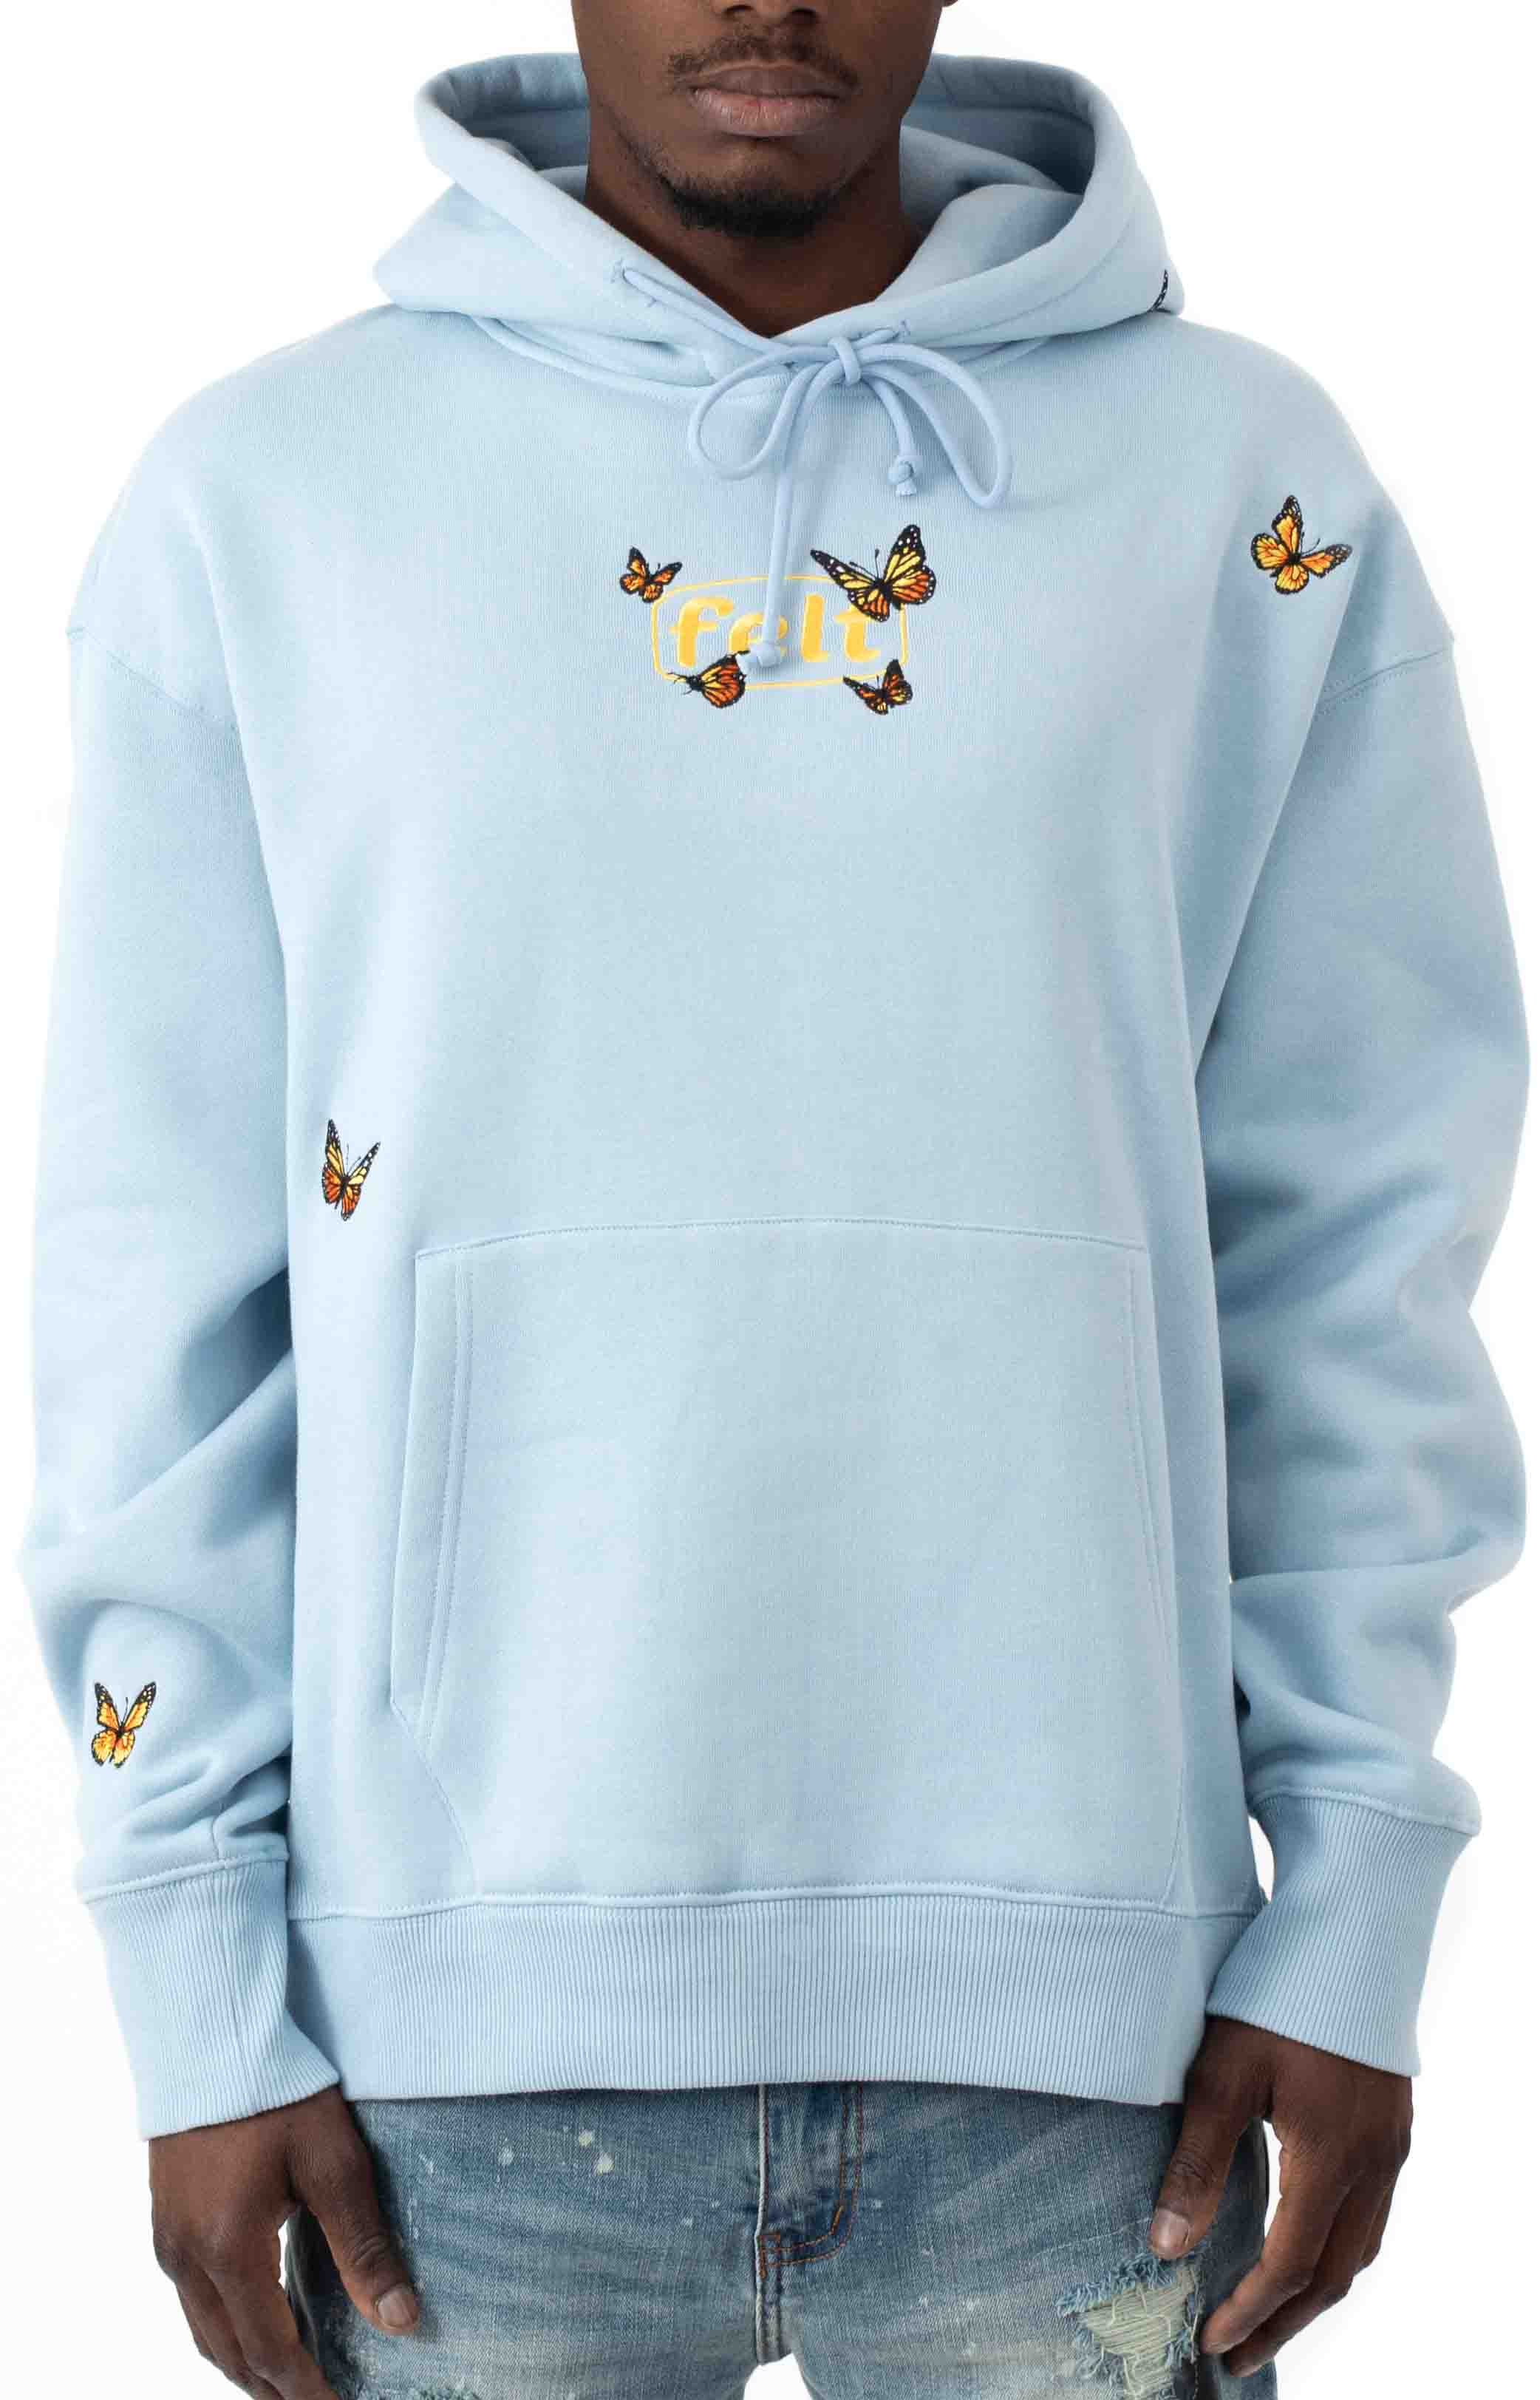 Butterfly Pullover Hoodie - Baby Blue